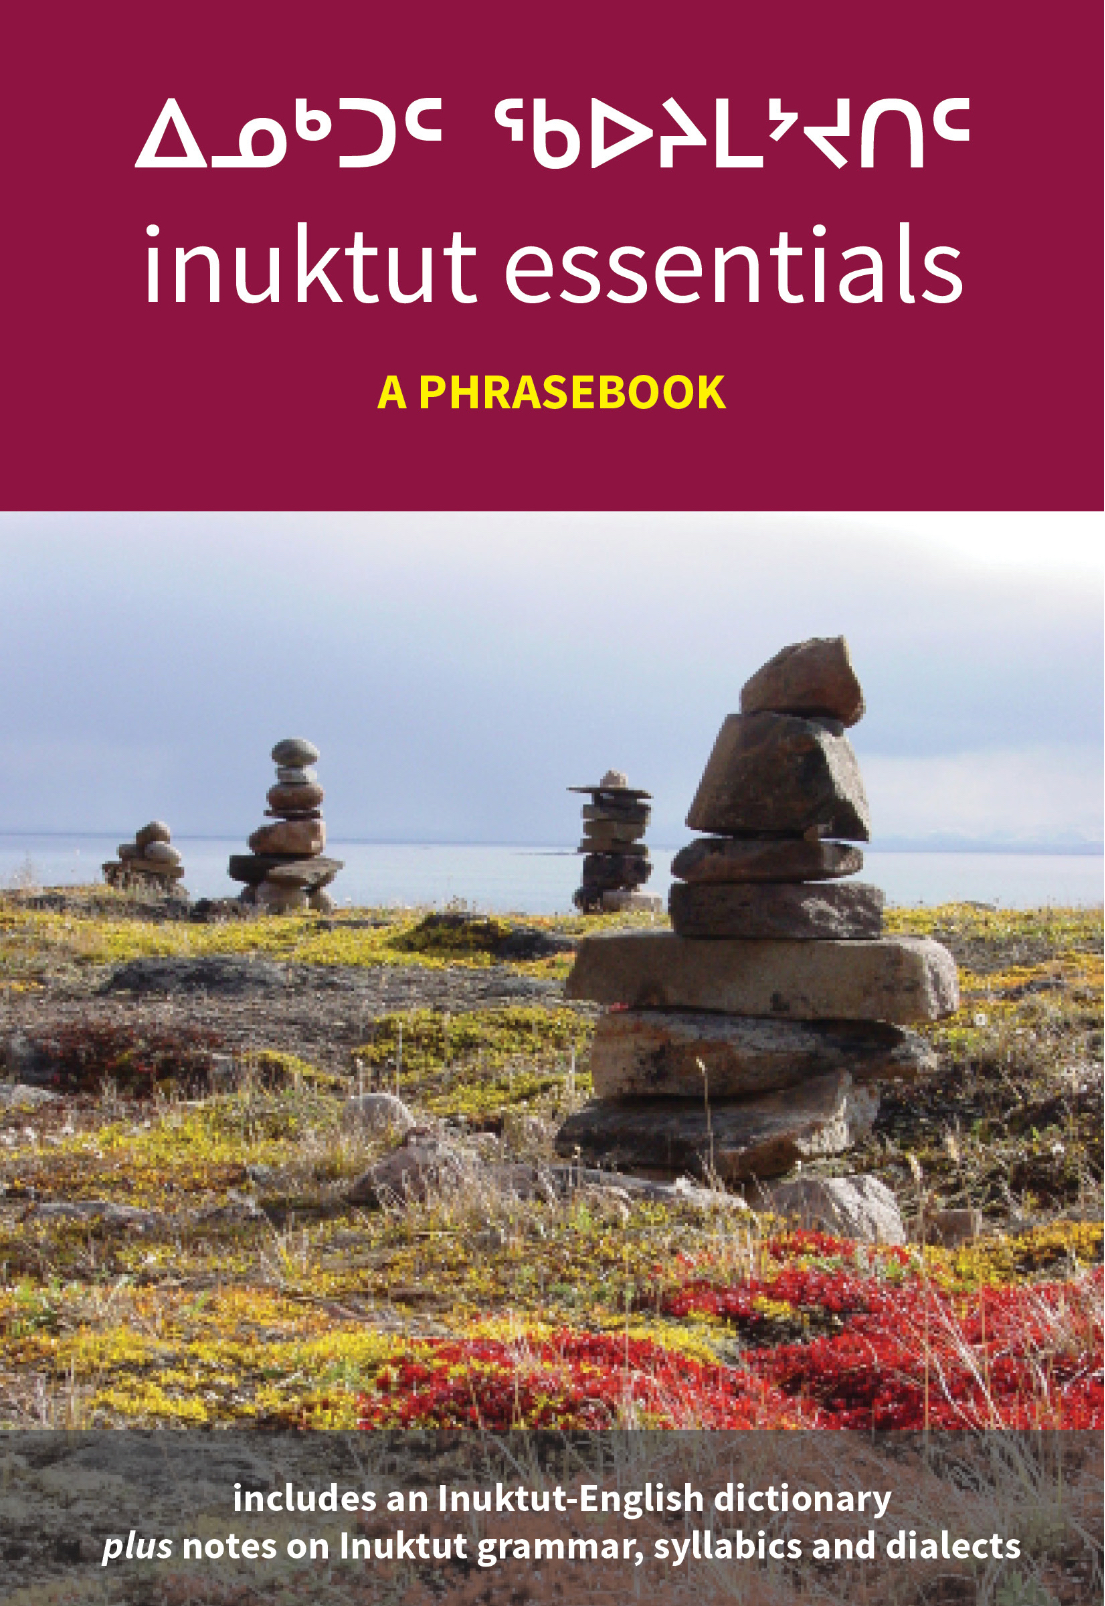 ᐃᓄᒃᑐᑦ ᖃᐅᔨᒪᔾᔪᑎᑦInuktut Essentials: A Phrasebook - Packed with handy phrases and vocabulary you can use in a variety of situations, including the workplace, a night on the town, a hunting trip or a visit with a family.162 pagesPrice: $35